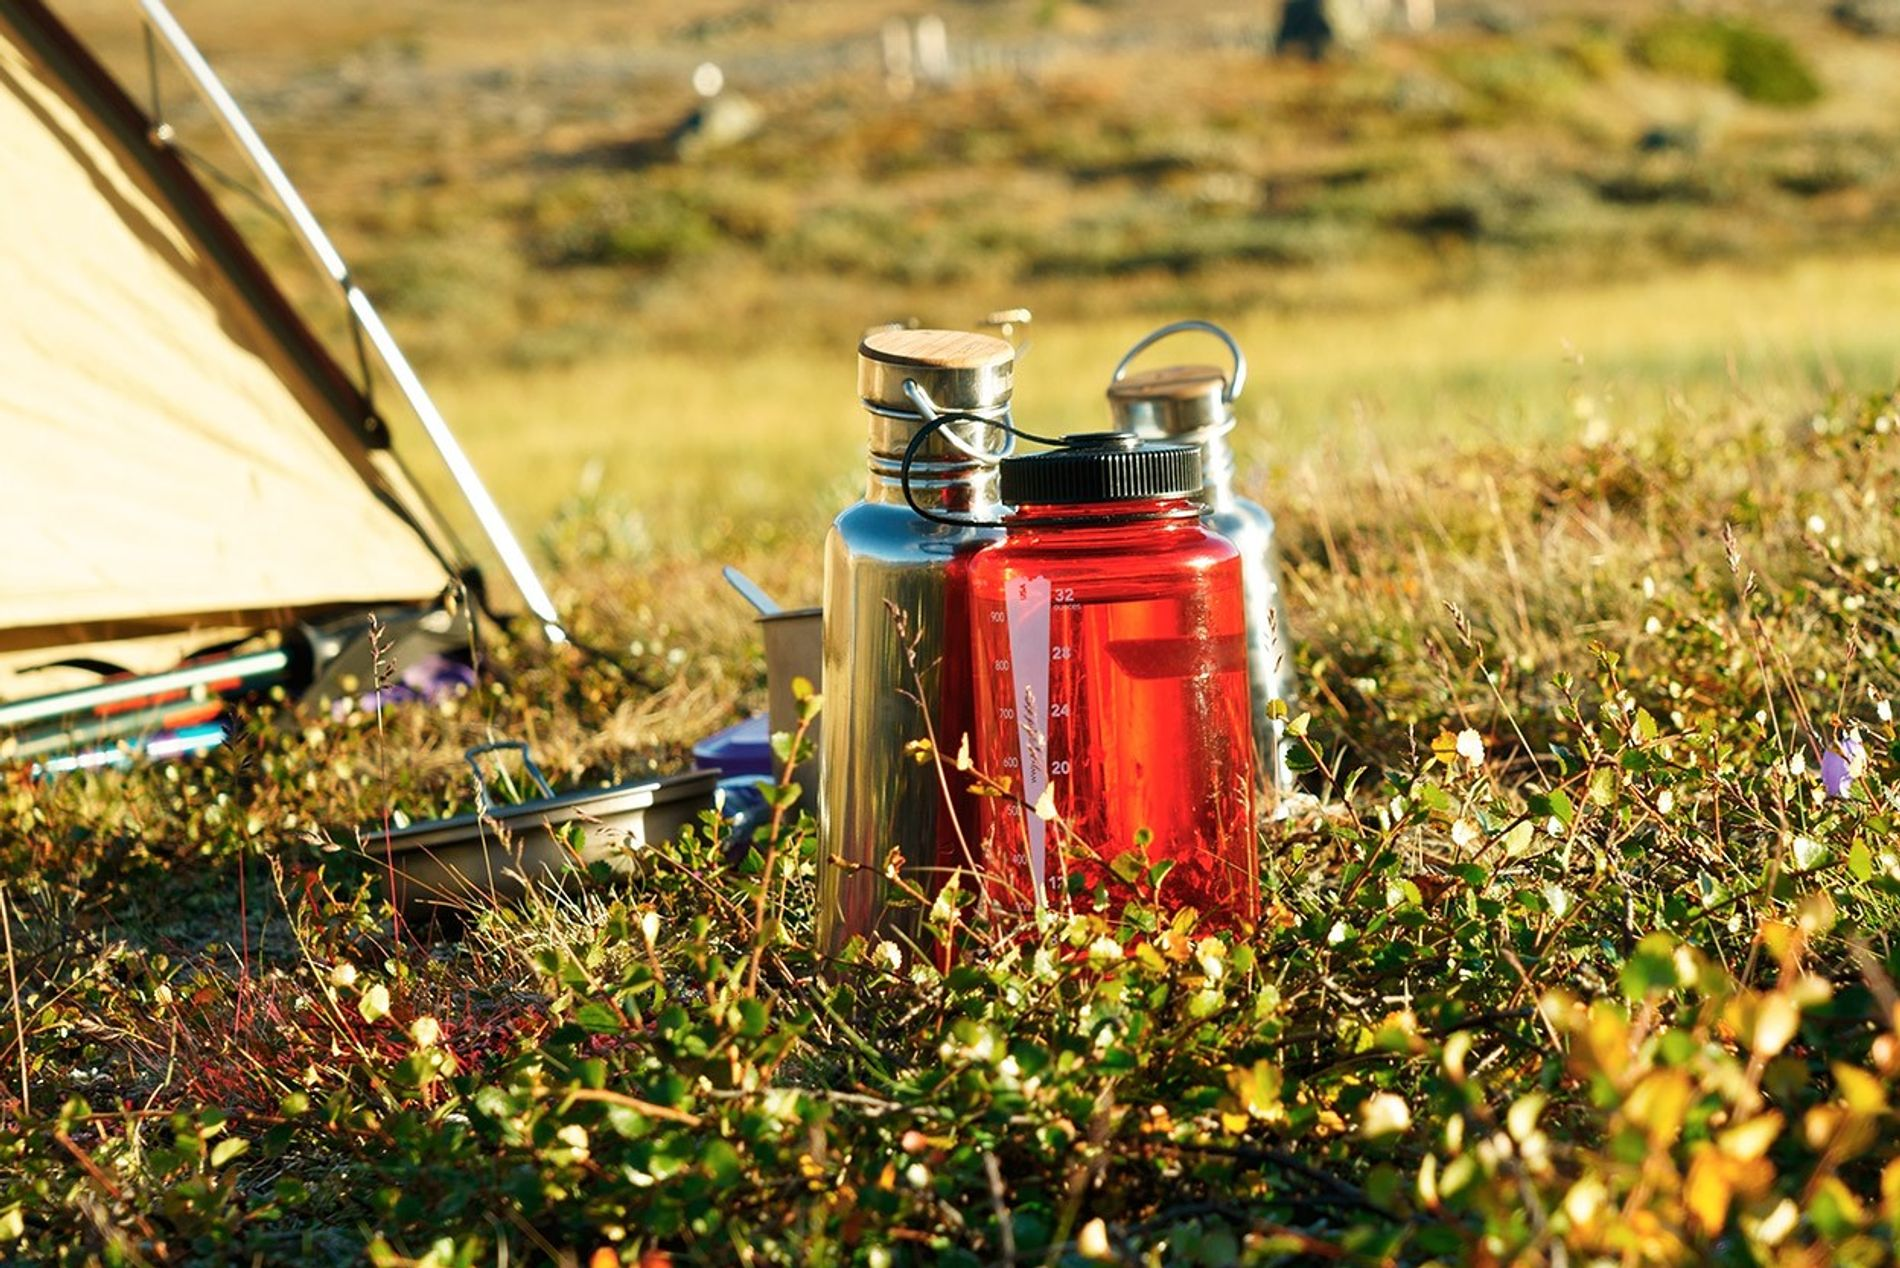 Reusable water bottles are a traveler's best friend. But how do you find potable water to ...